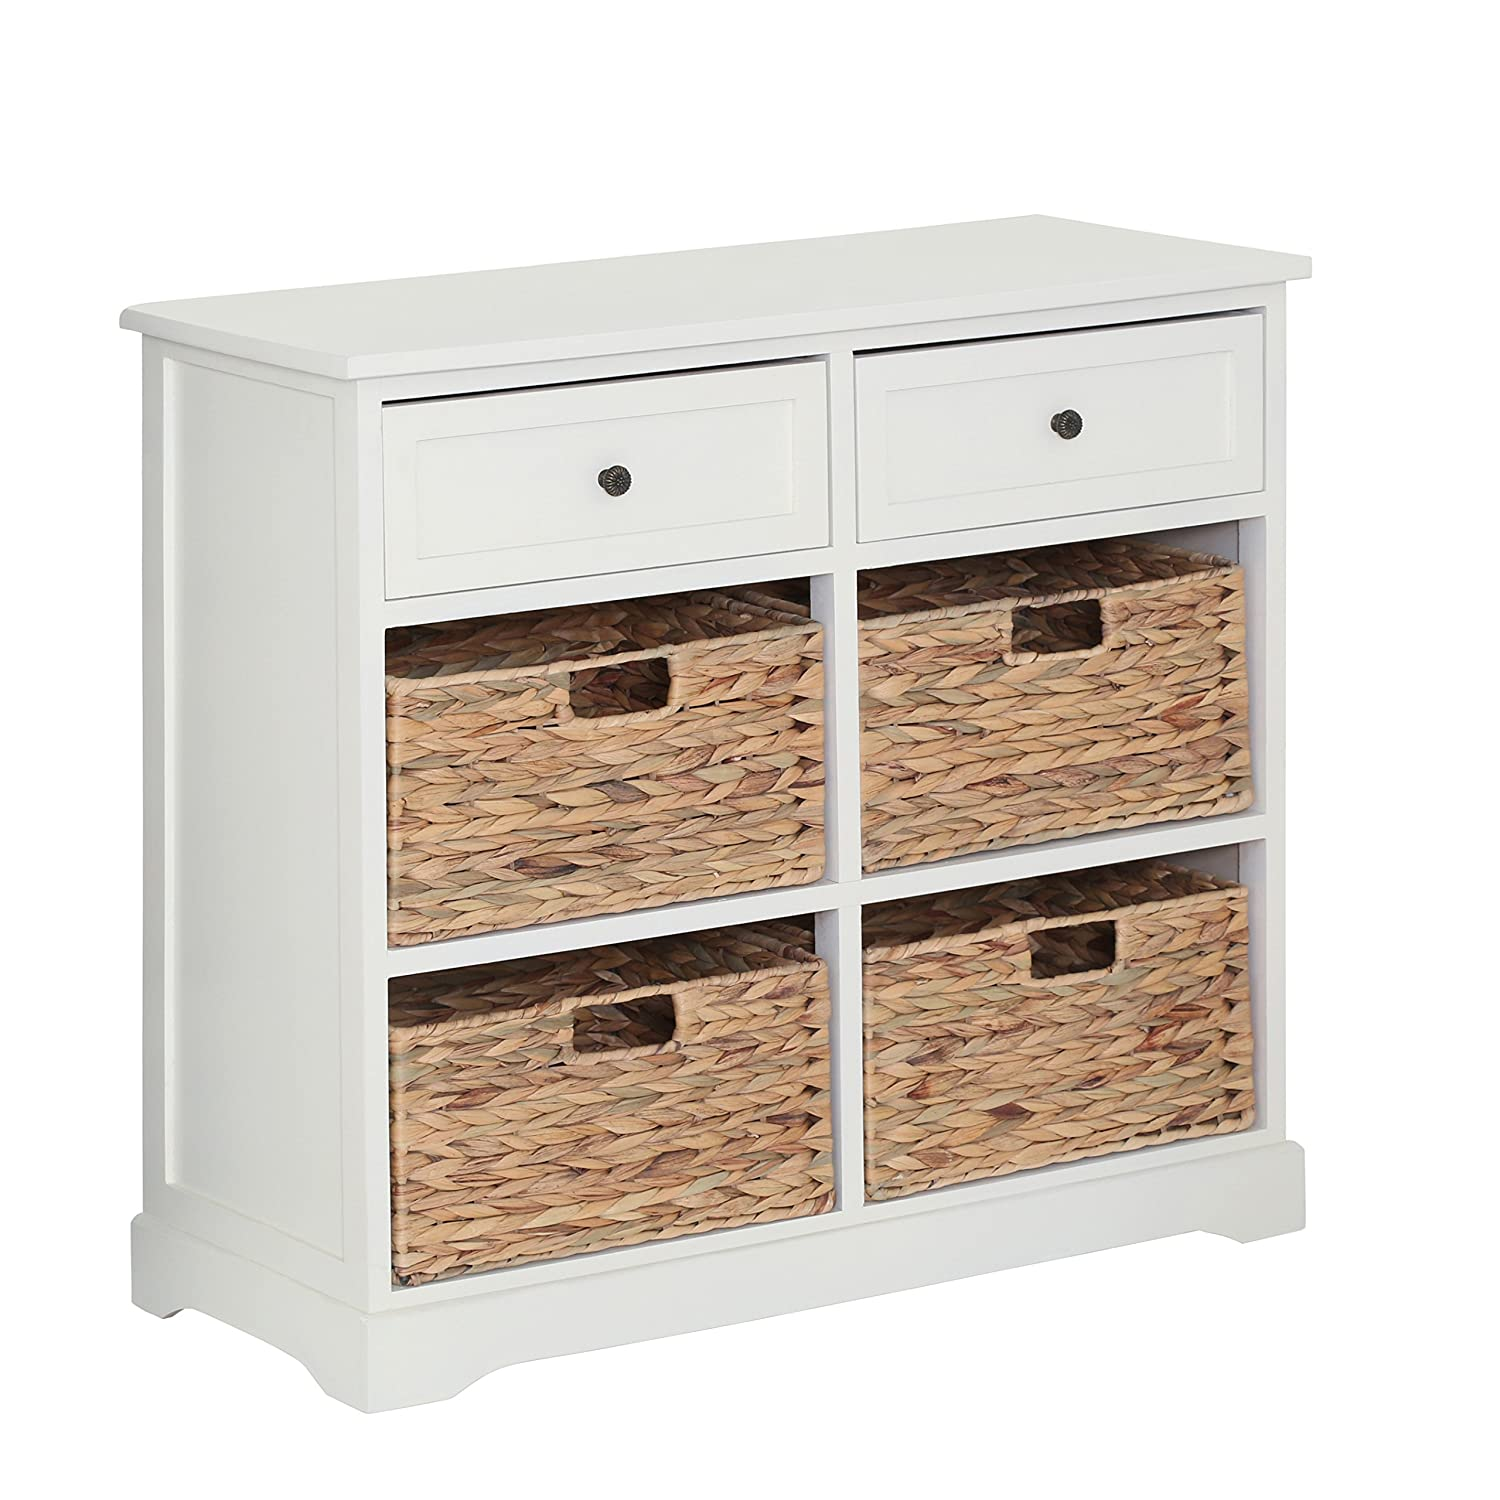 Premier Housewares Vermont 1 Drawer and 2 Baskets Cabinet - Ivory 2404026